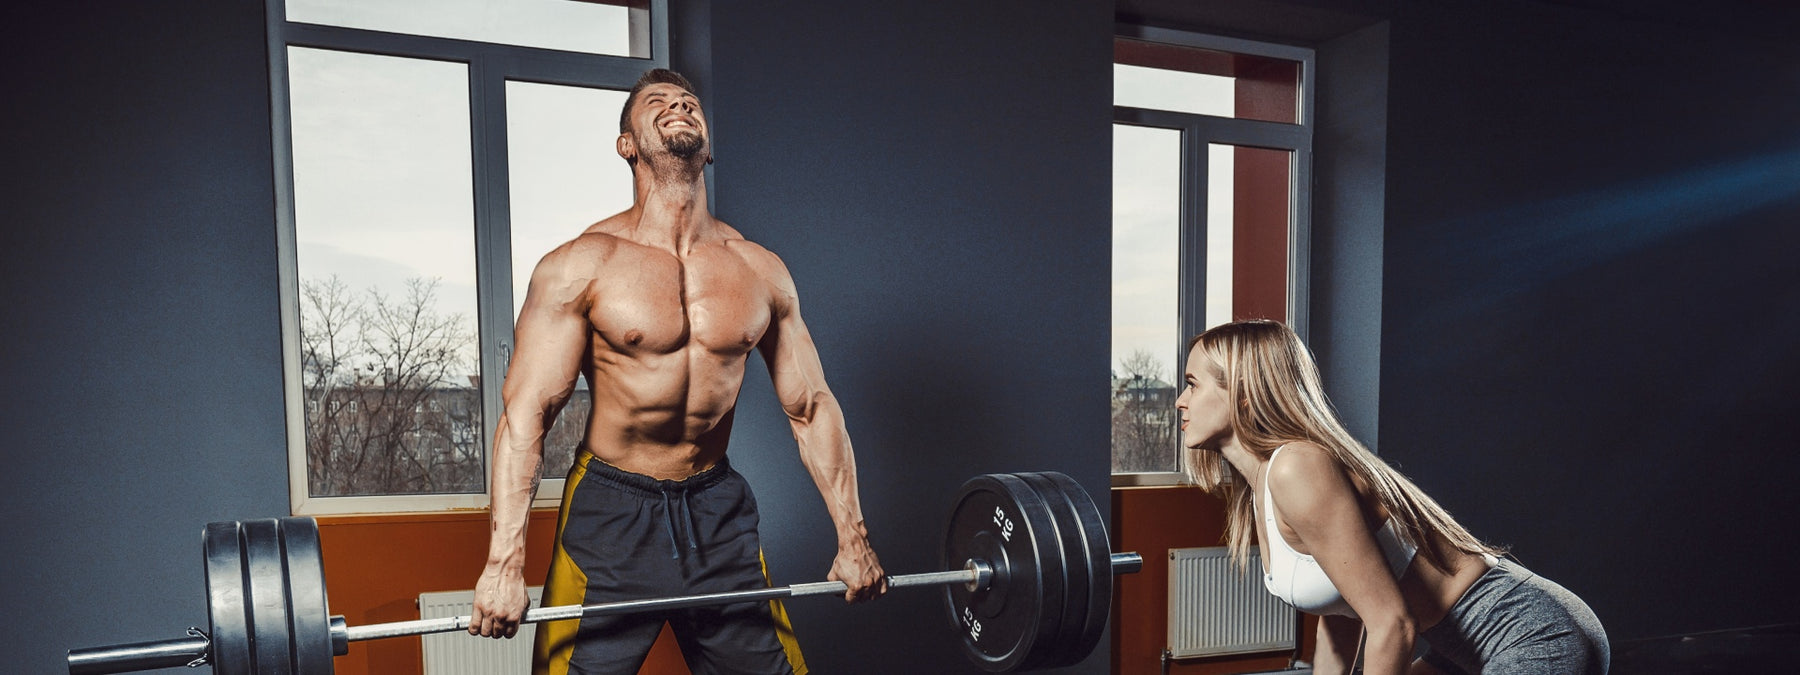 10 Commandments of Bodybuilding - Thou Shalt Make Gainz!